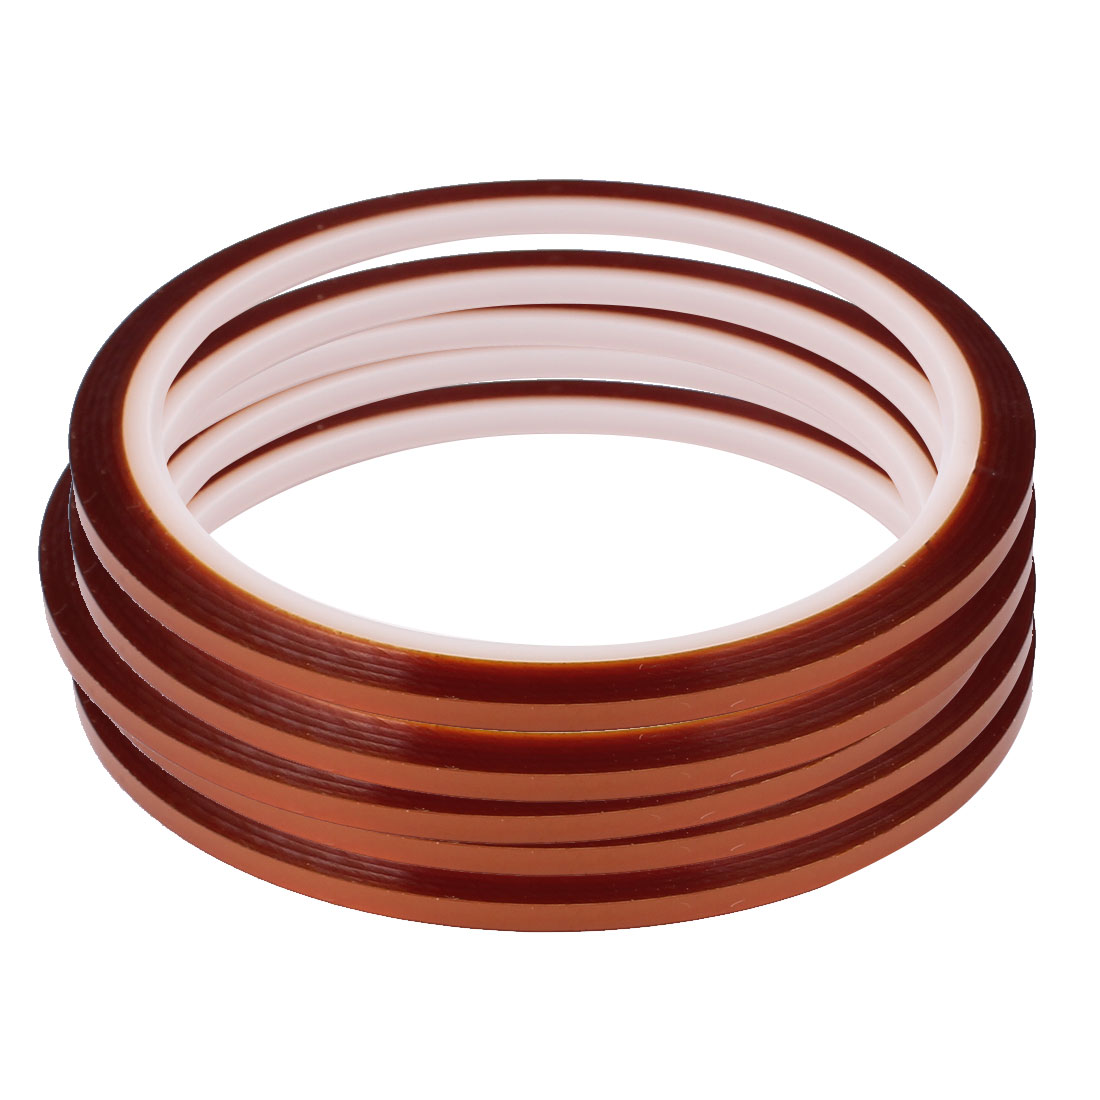 5pcs 3mm Width 33M Length High Temperature Heat Resistant Polyimide Tape